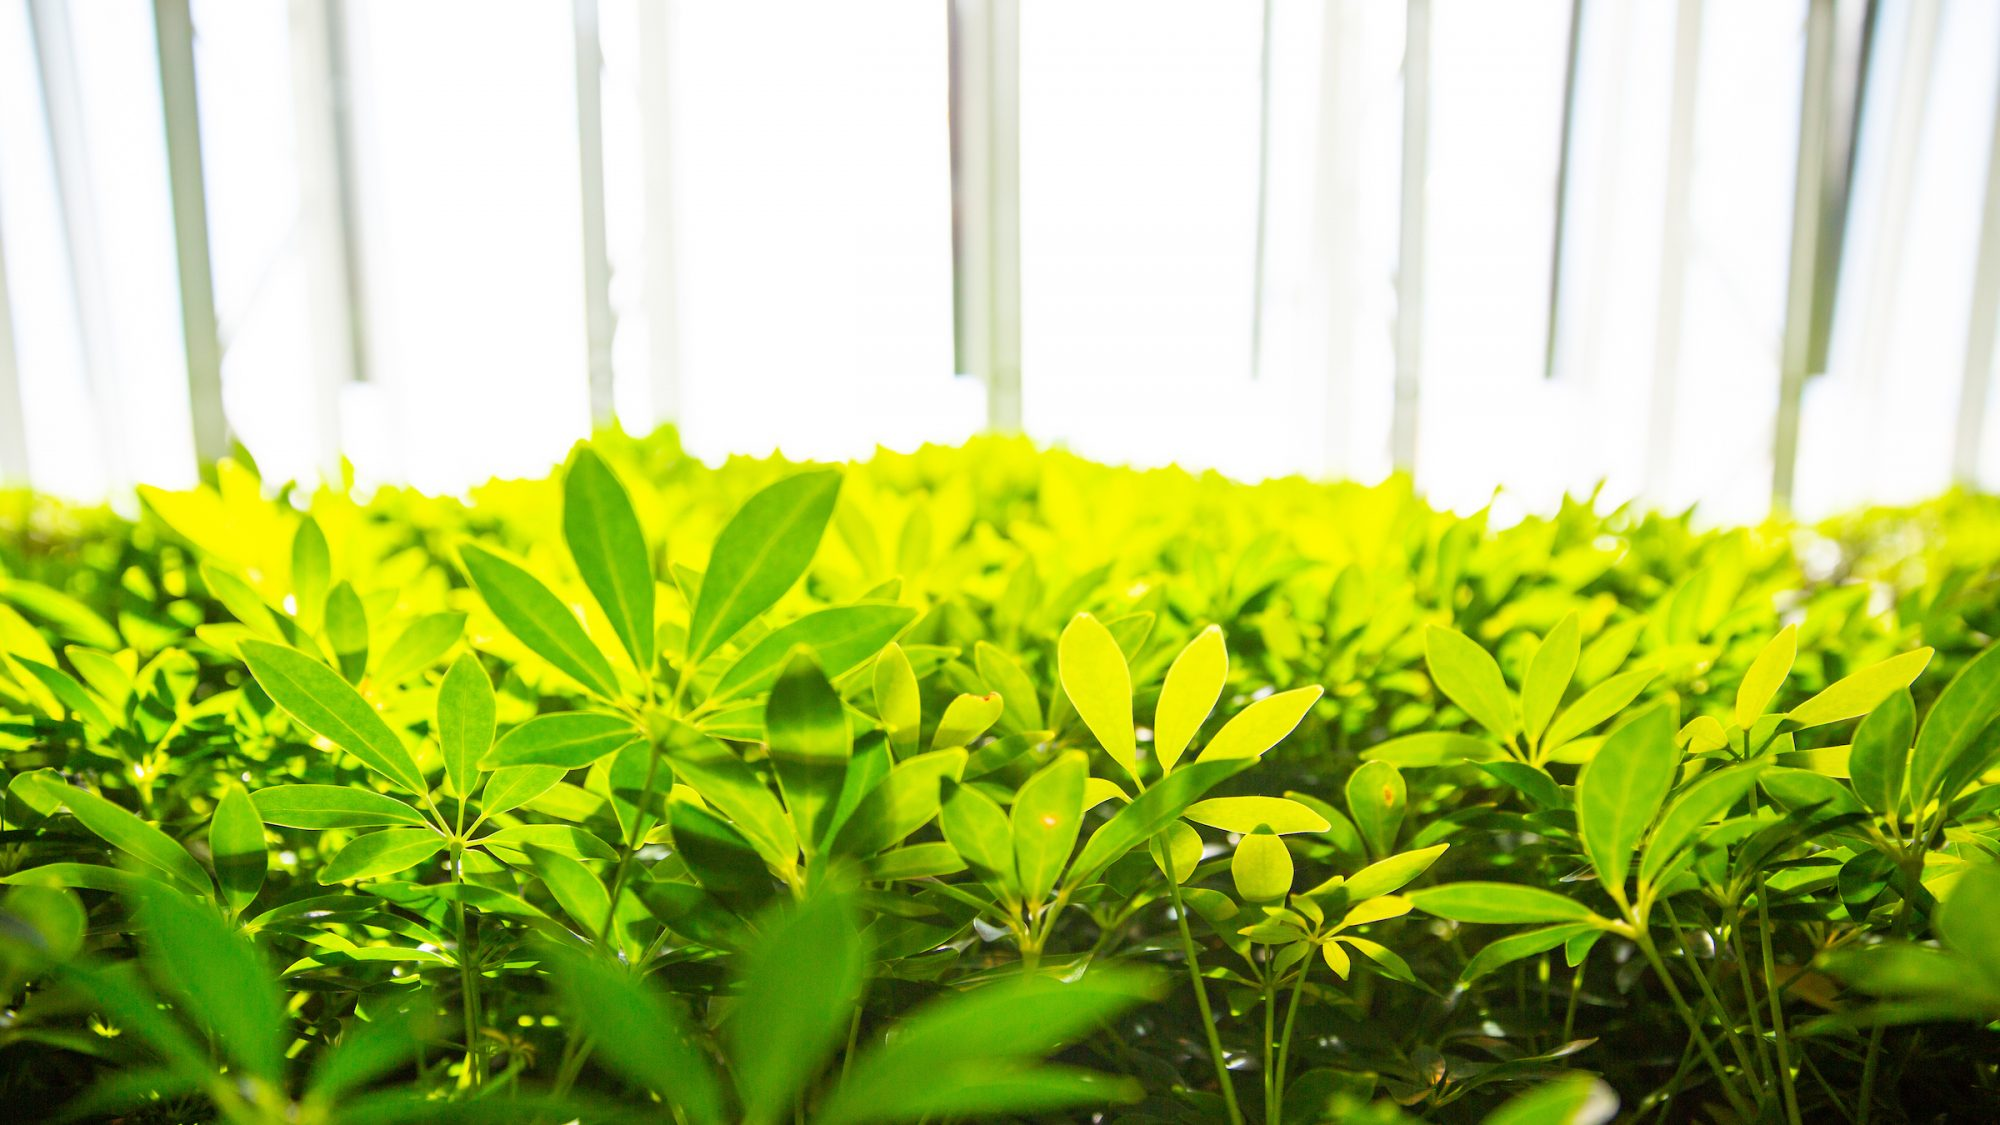 Green well growing up towards a window